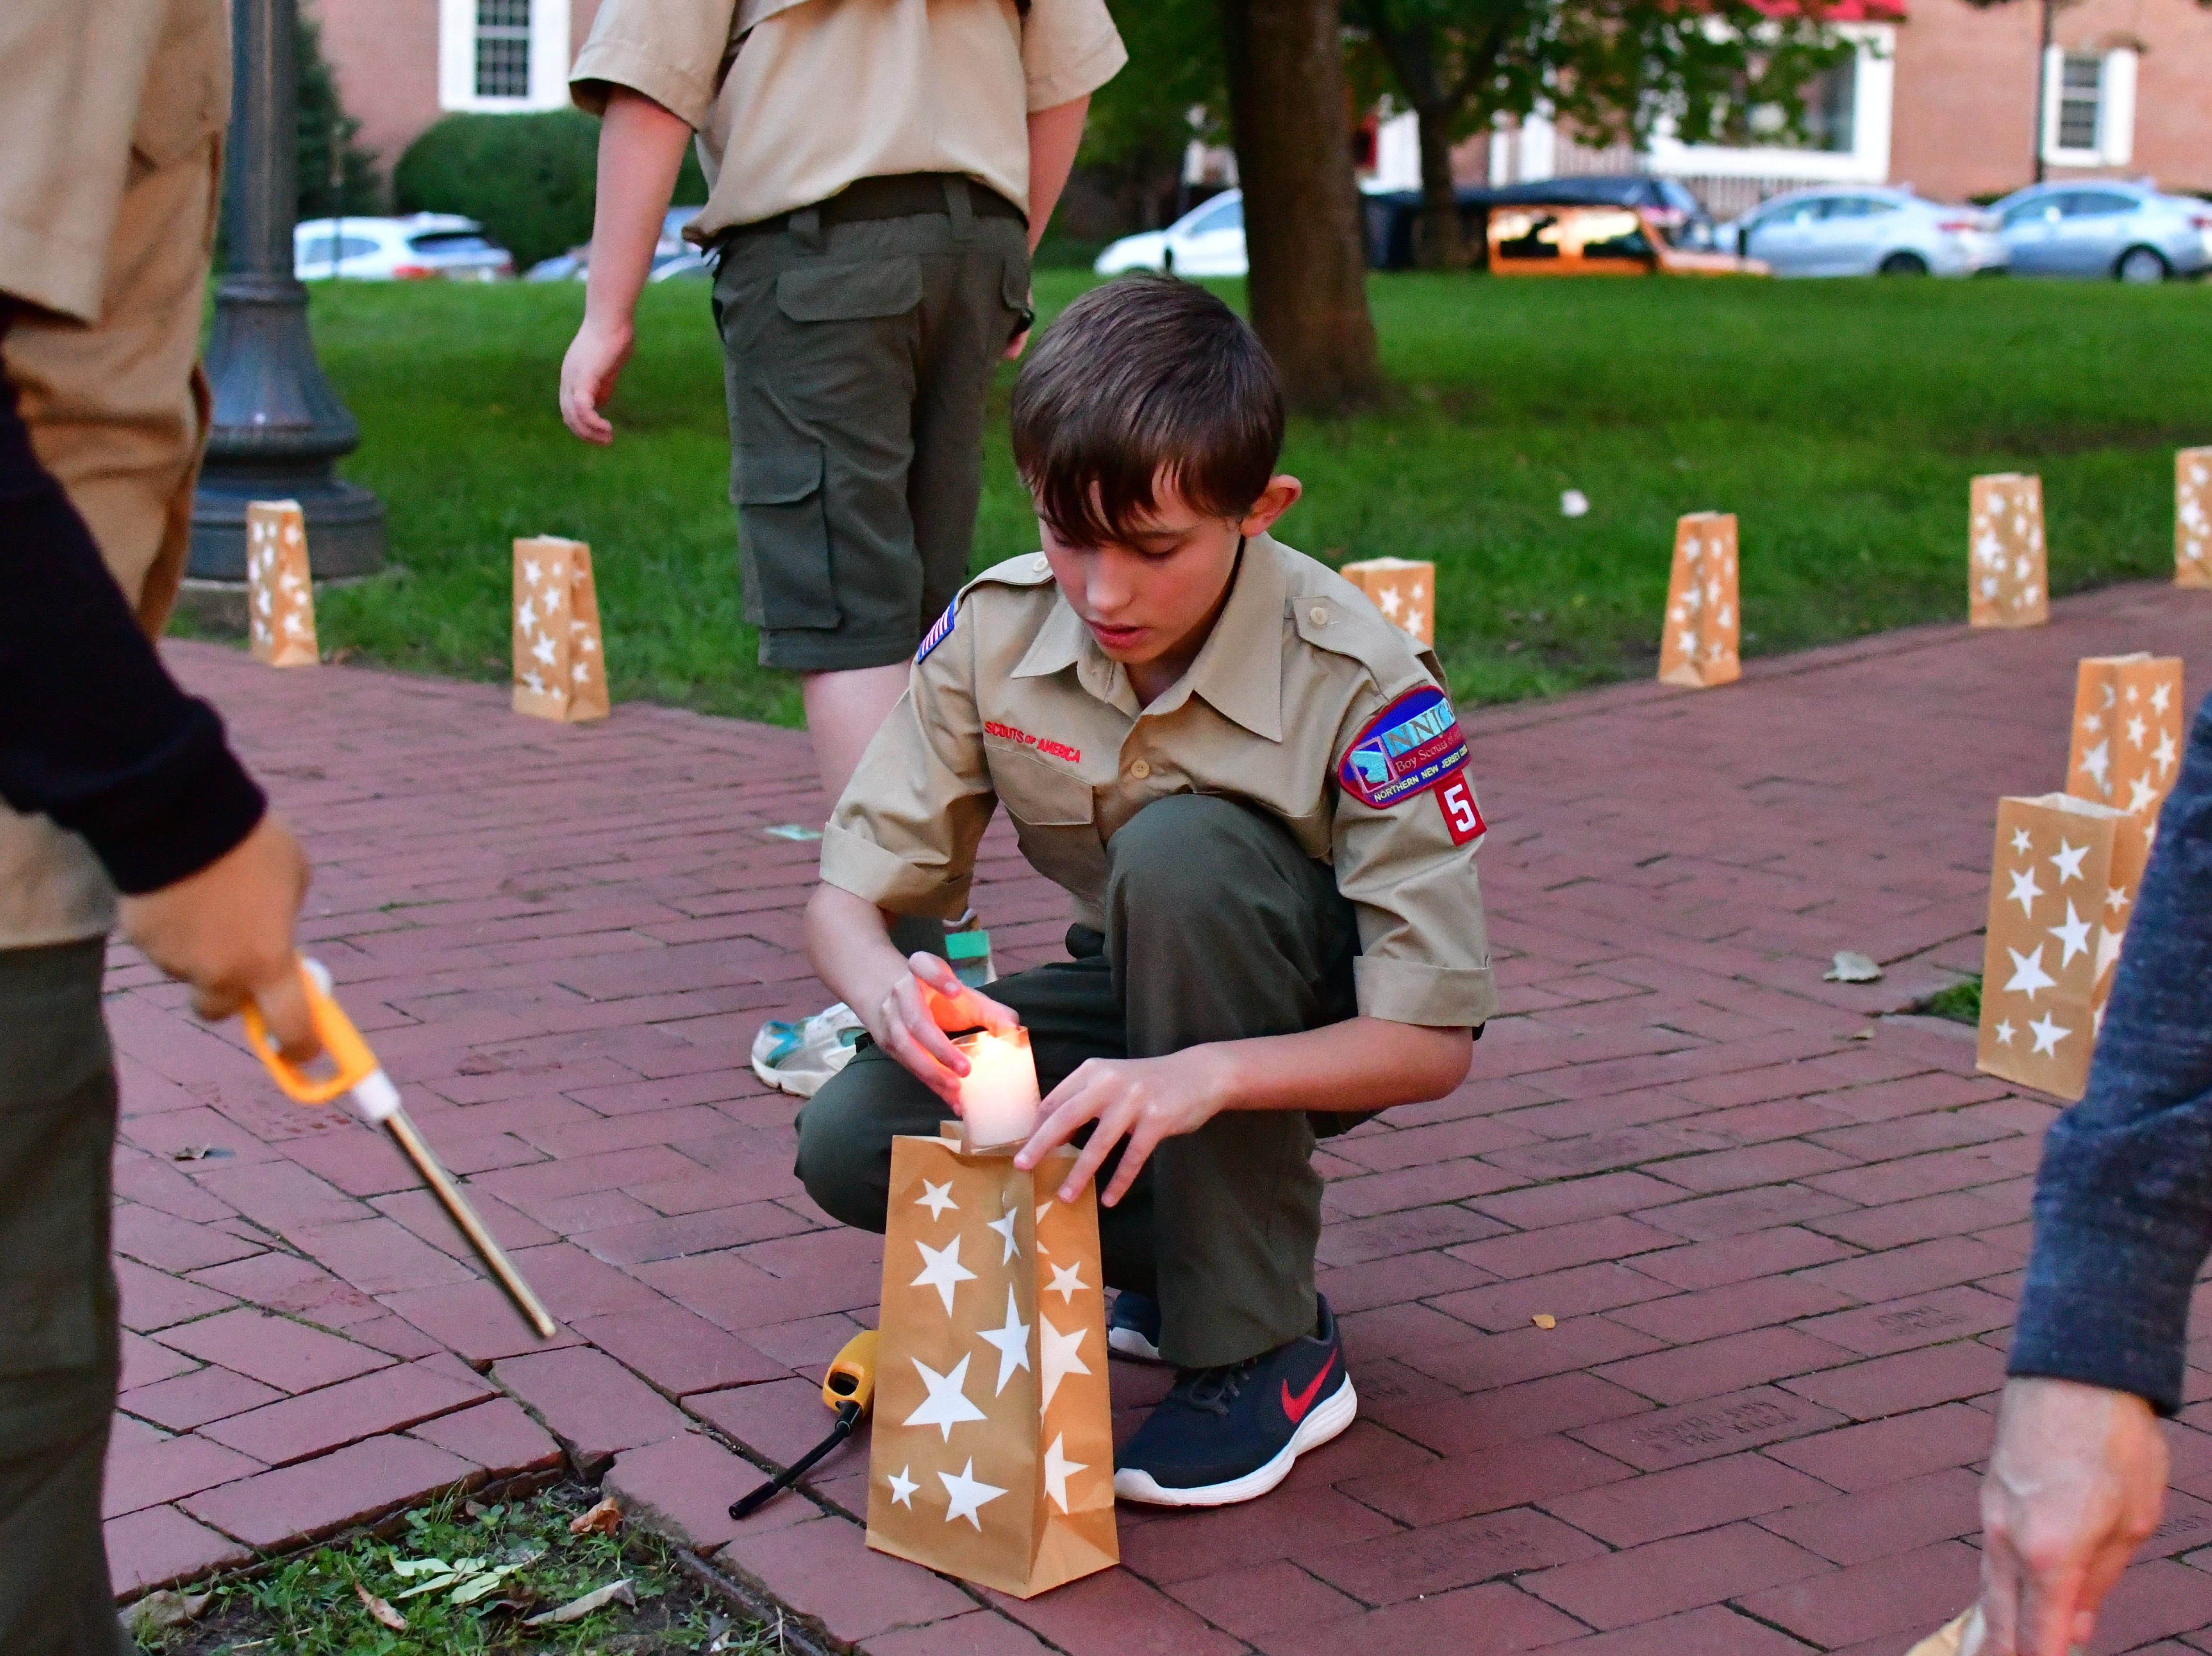 Boy scouts who helped light the luminaries. The Gold Star Mother's Day Committee sponsored its eighth annual event commemorating Gold Star Mother's Day on Sept. 30, at Van Neste Park, Ridgewood. After a short ceremony, hundreds of luminaries were lit to honor Gold Star Mothers (moms who had lost sons and daughters to the war) and their families.